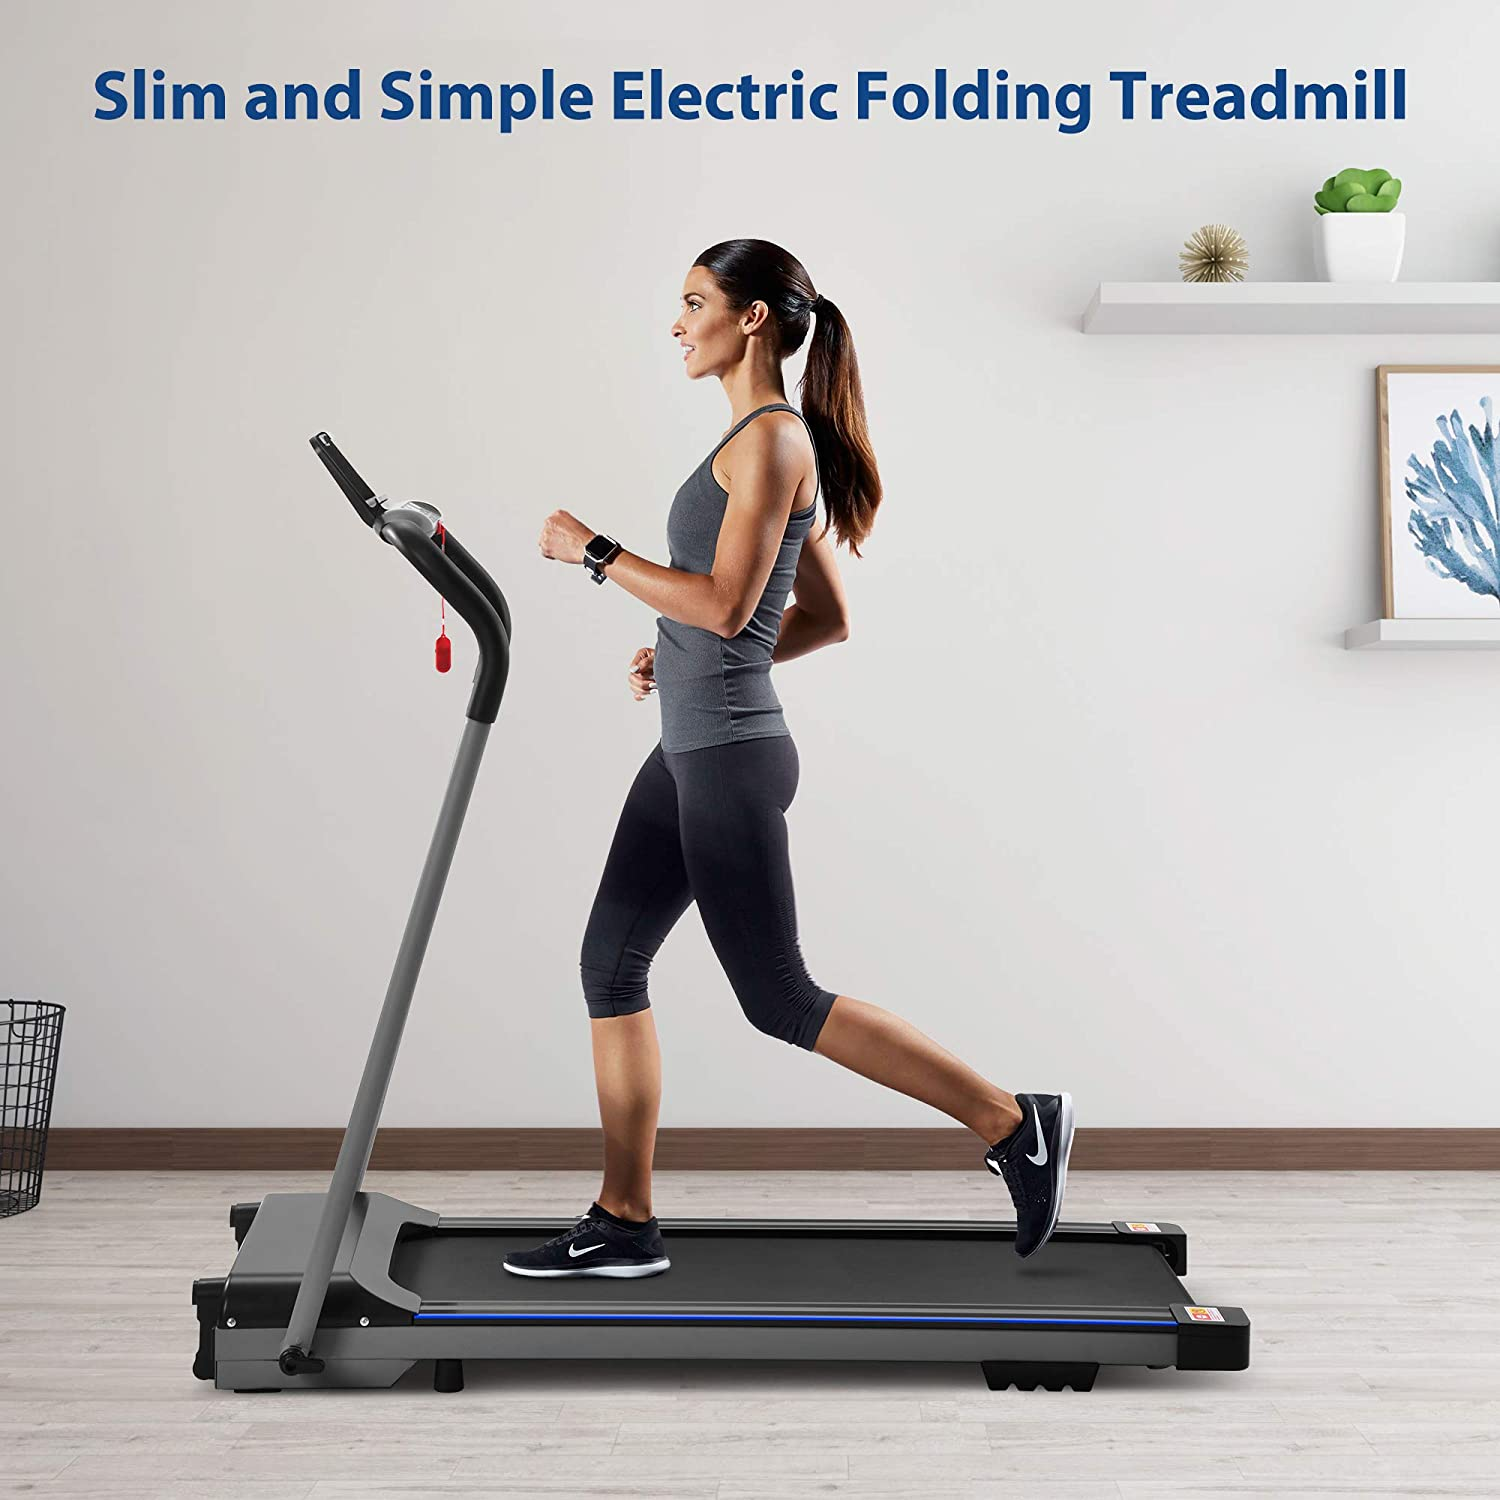 FYC Treadmill for Home Portable Electric Folding Treadmill Running Exercise Machine Compact Treadmill Foldable for Home Gym Office Fitness Workout Jogging Walking Running No Installation Required